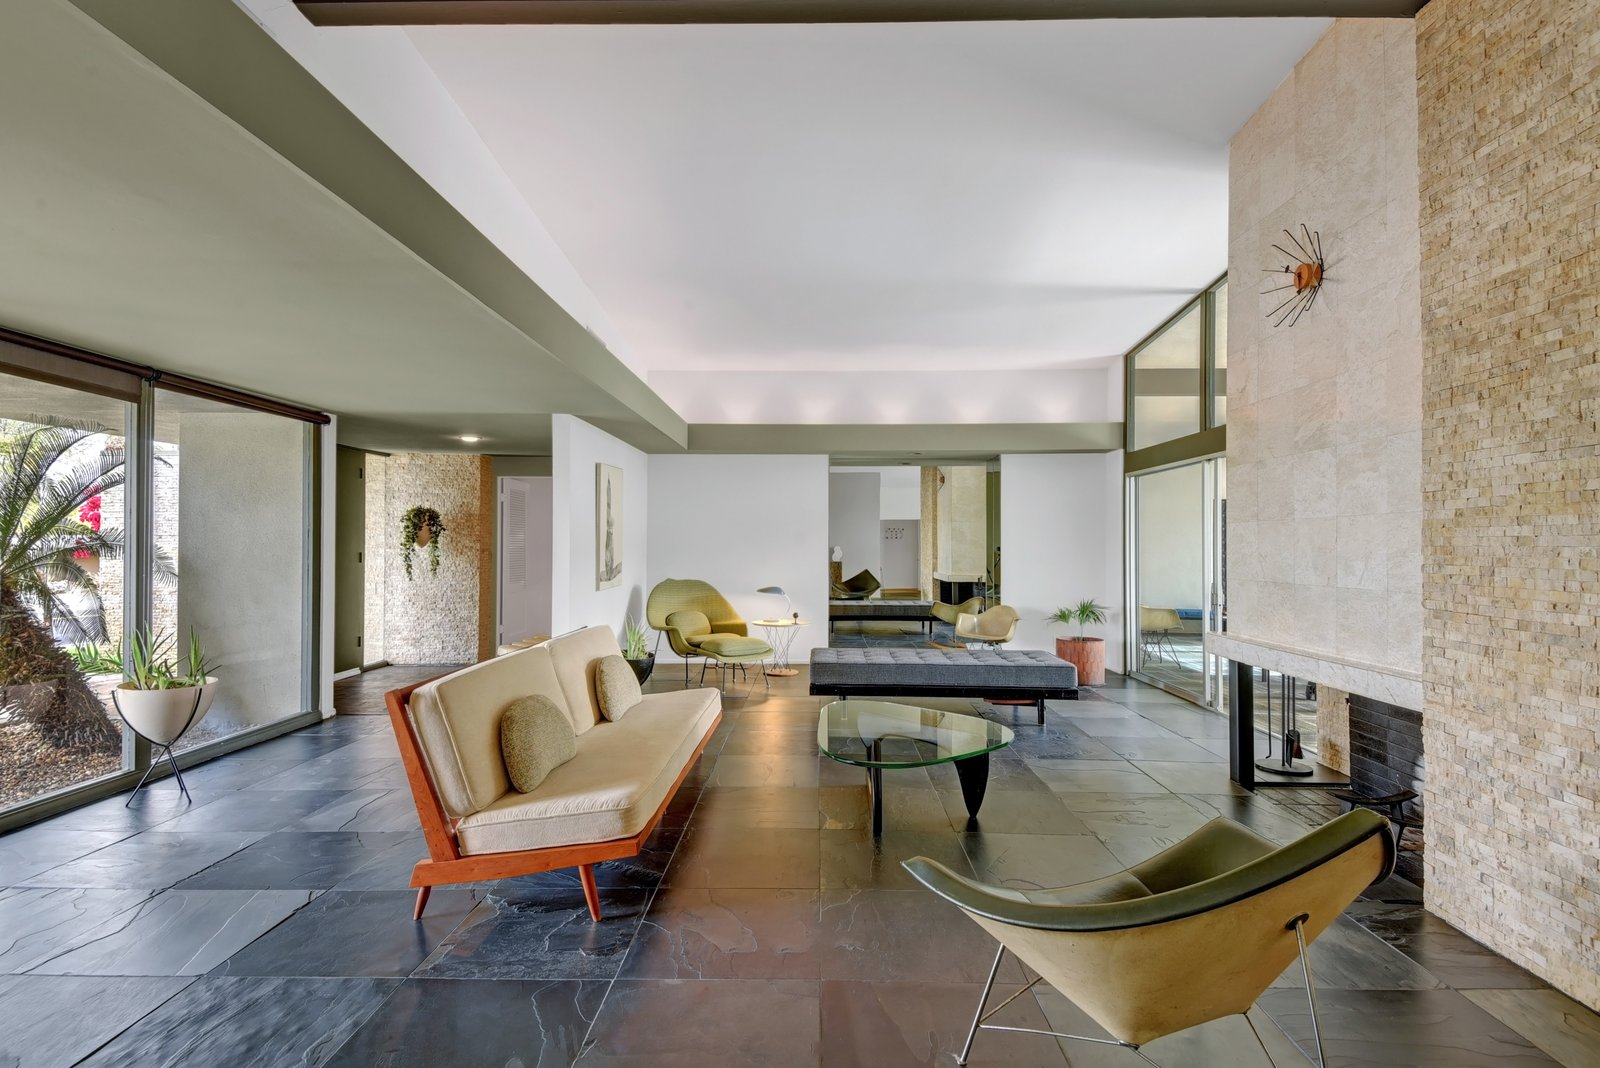 The interiors fully embrace the midcentury aesthetic, with high-beamed ceilings, slate floors, custom wood flooring, and a split rock fireplace.